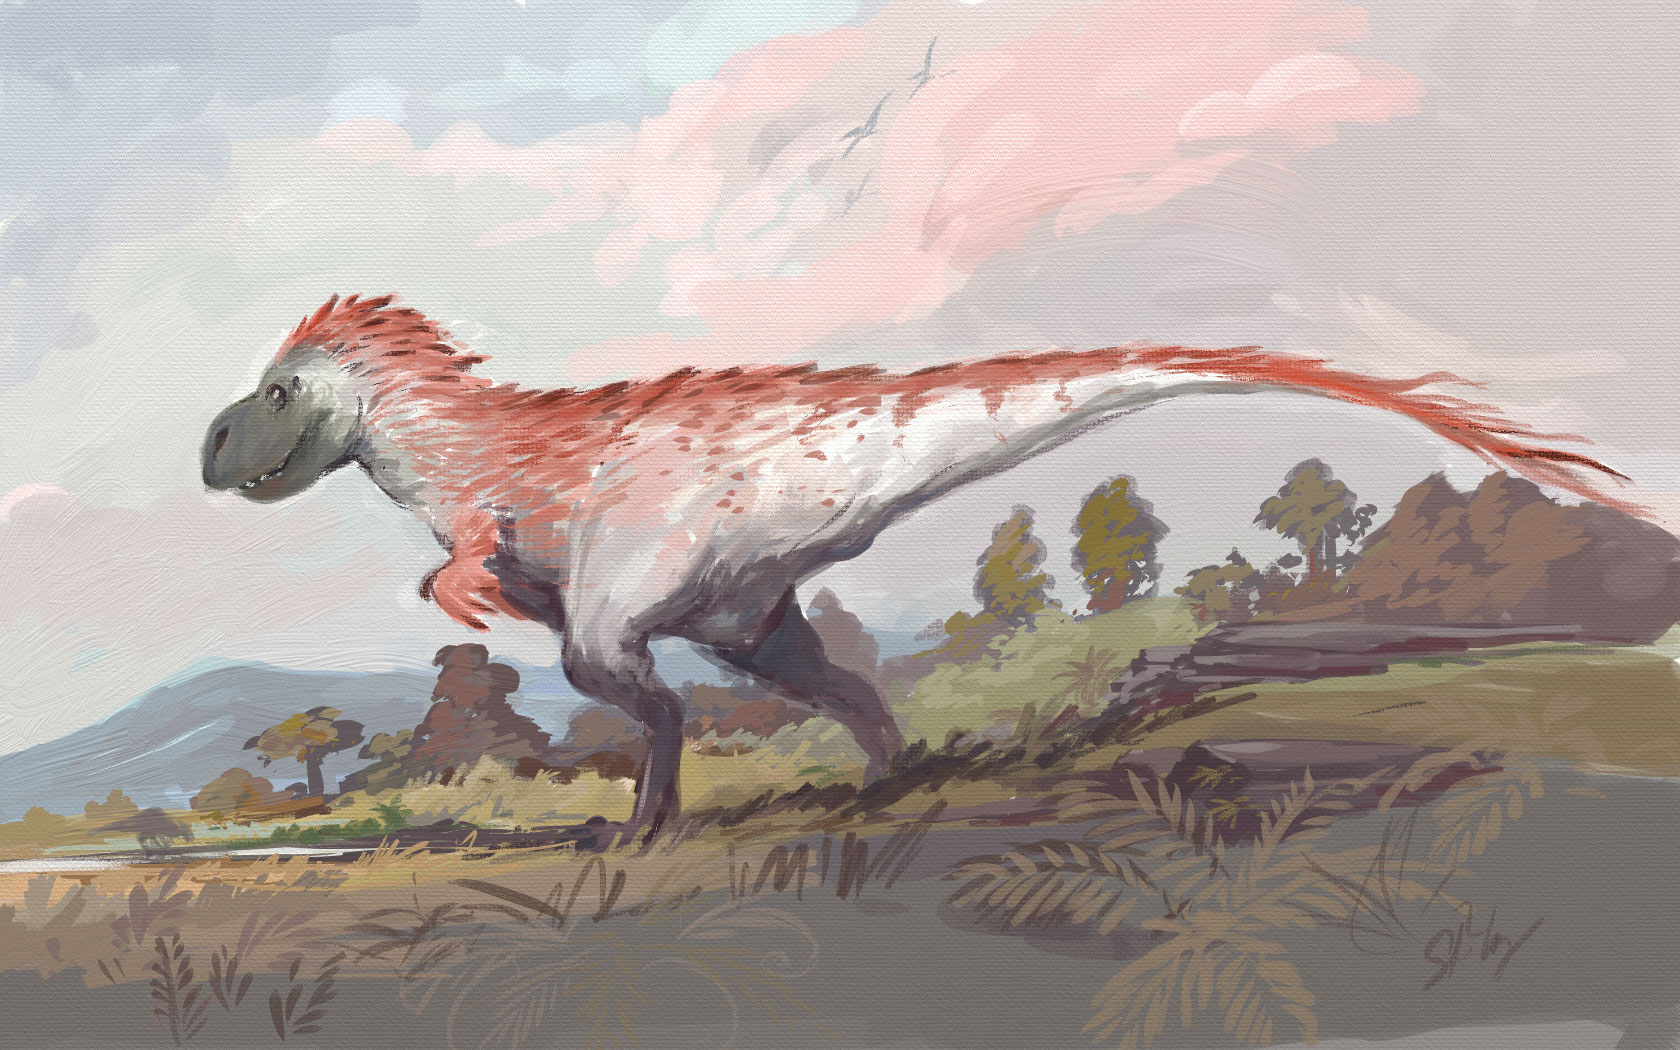 Tyrannosaurus rex sporting red feathers.